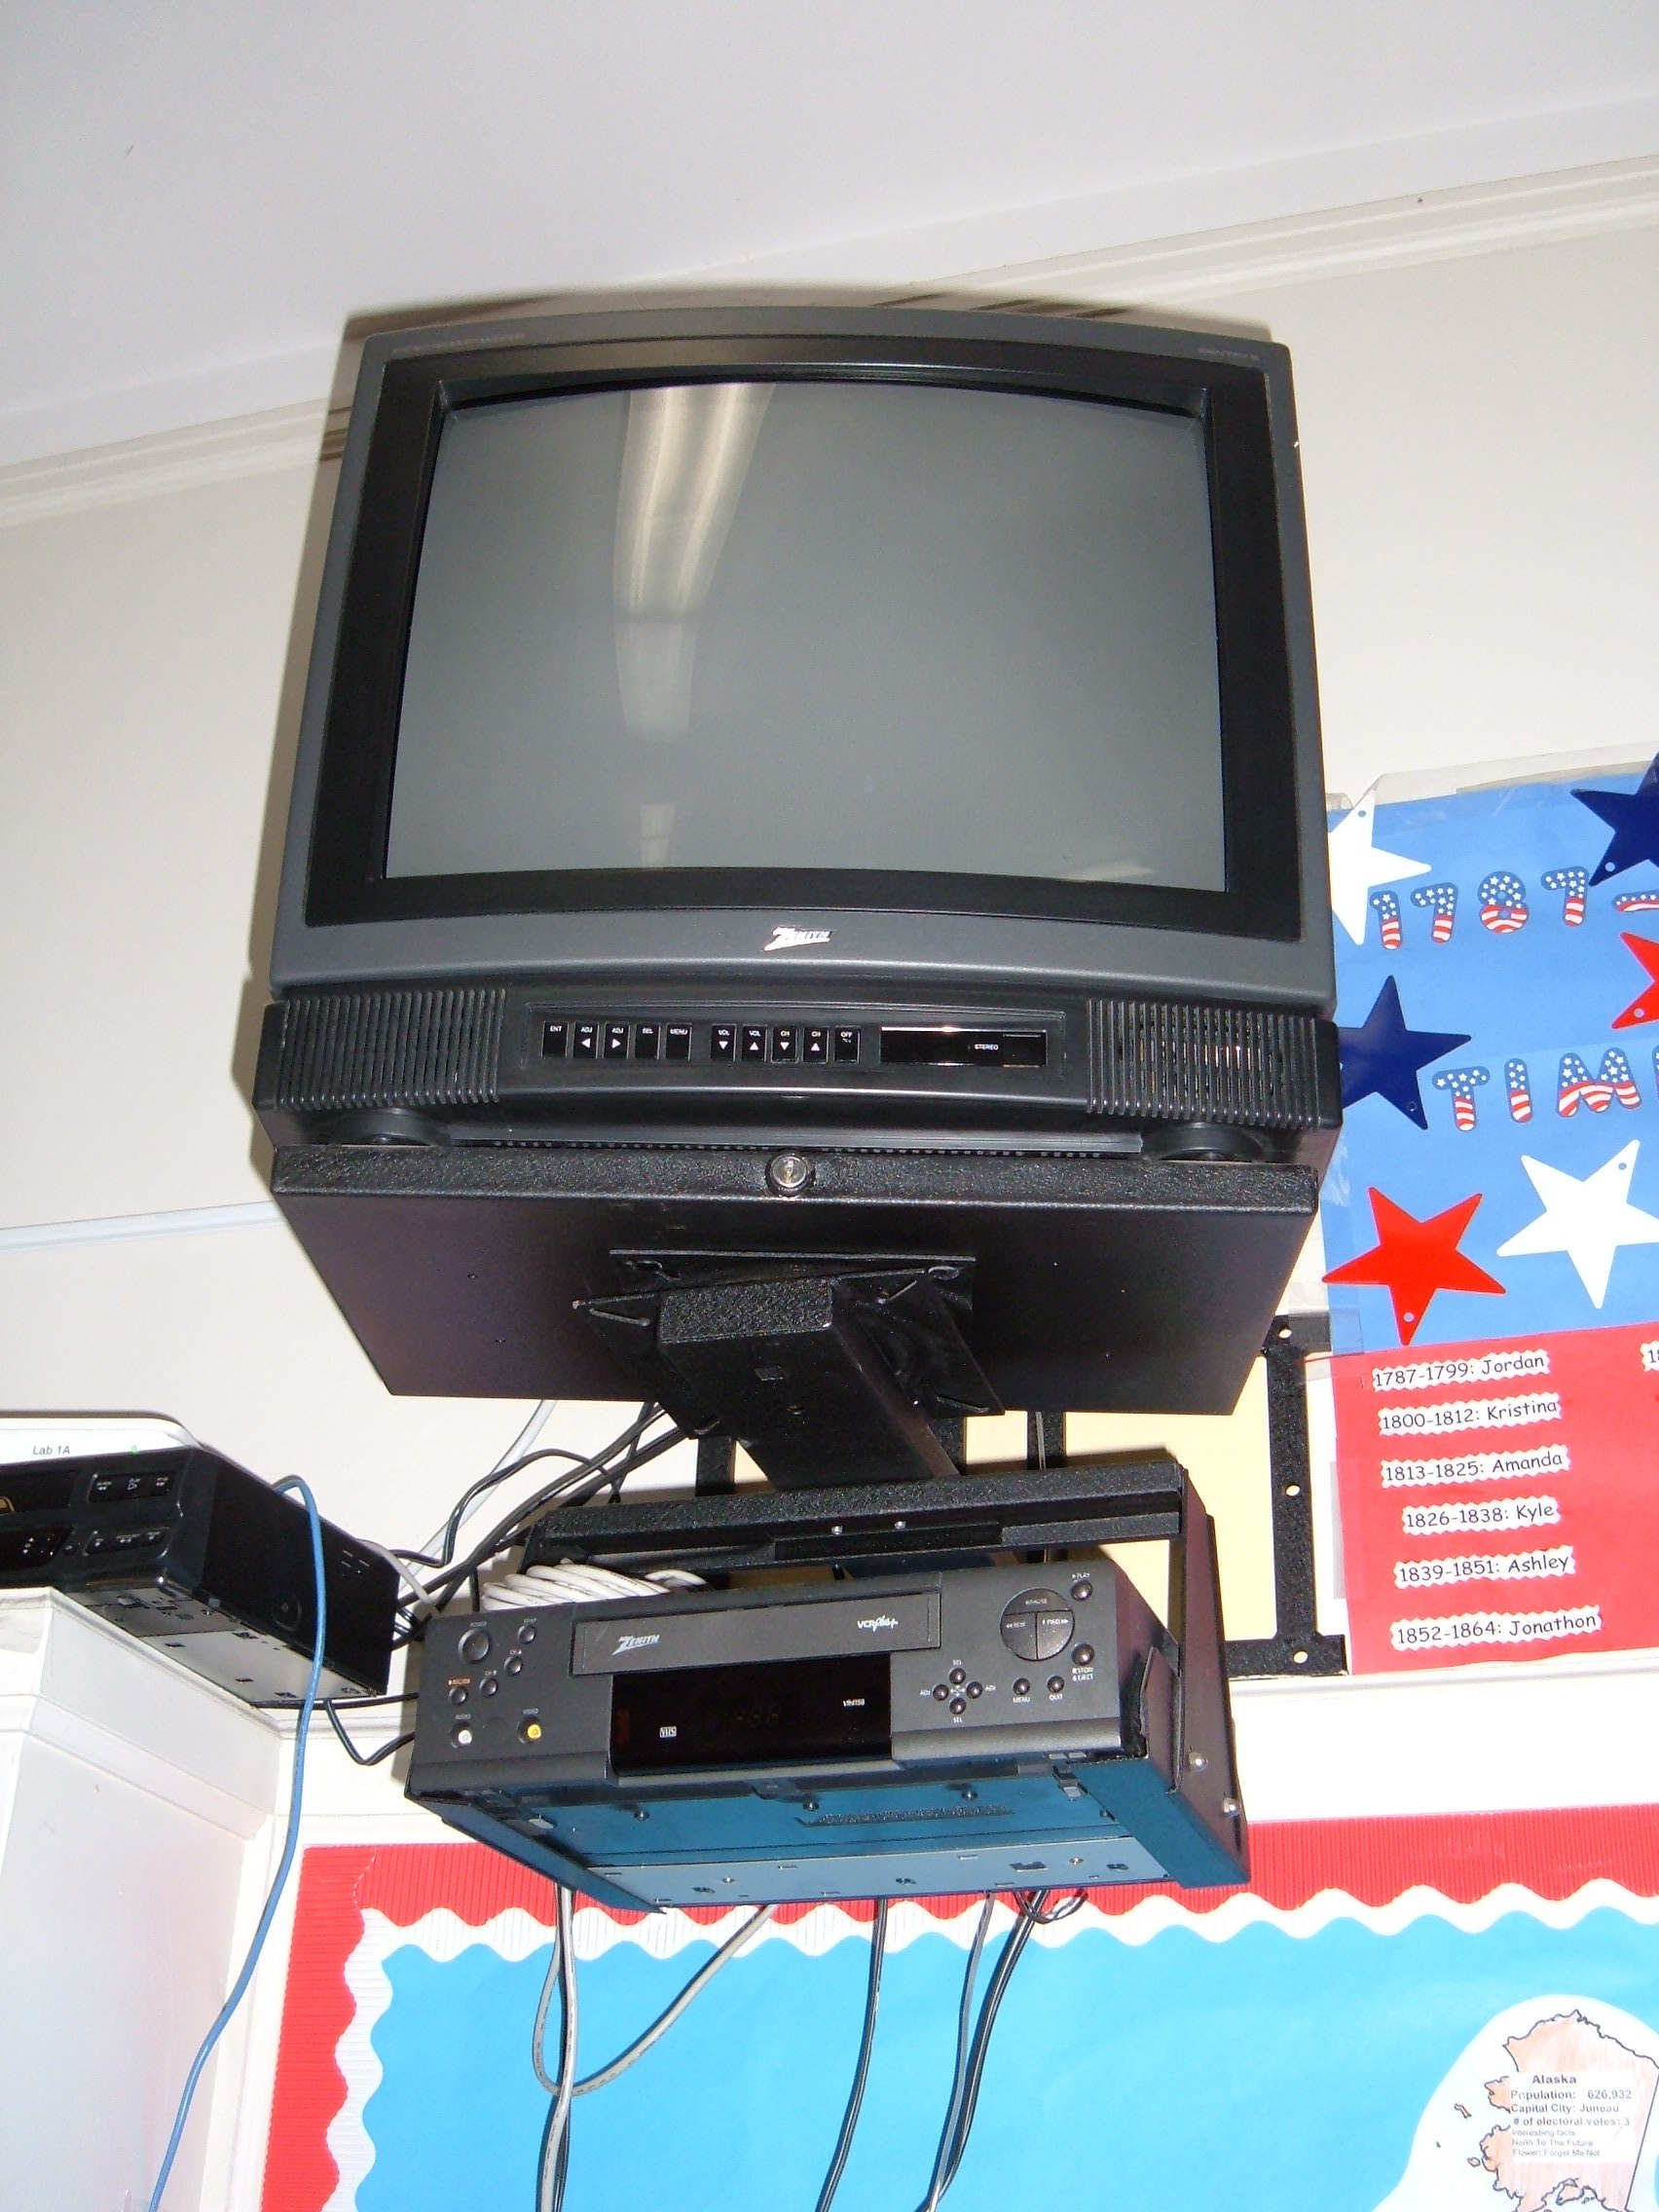 Chart Holder Wall Mount: Wall-mounted Zenith TV and VCR.JPG - Wikimedia Commons,Chart